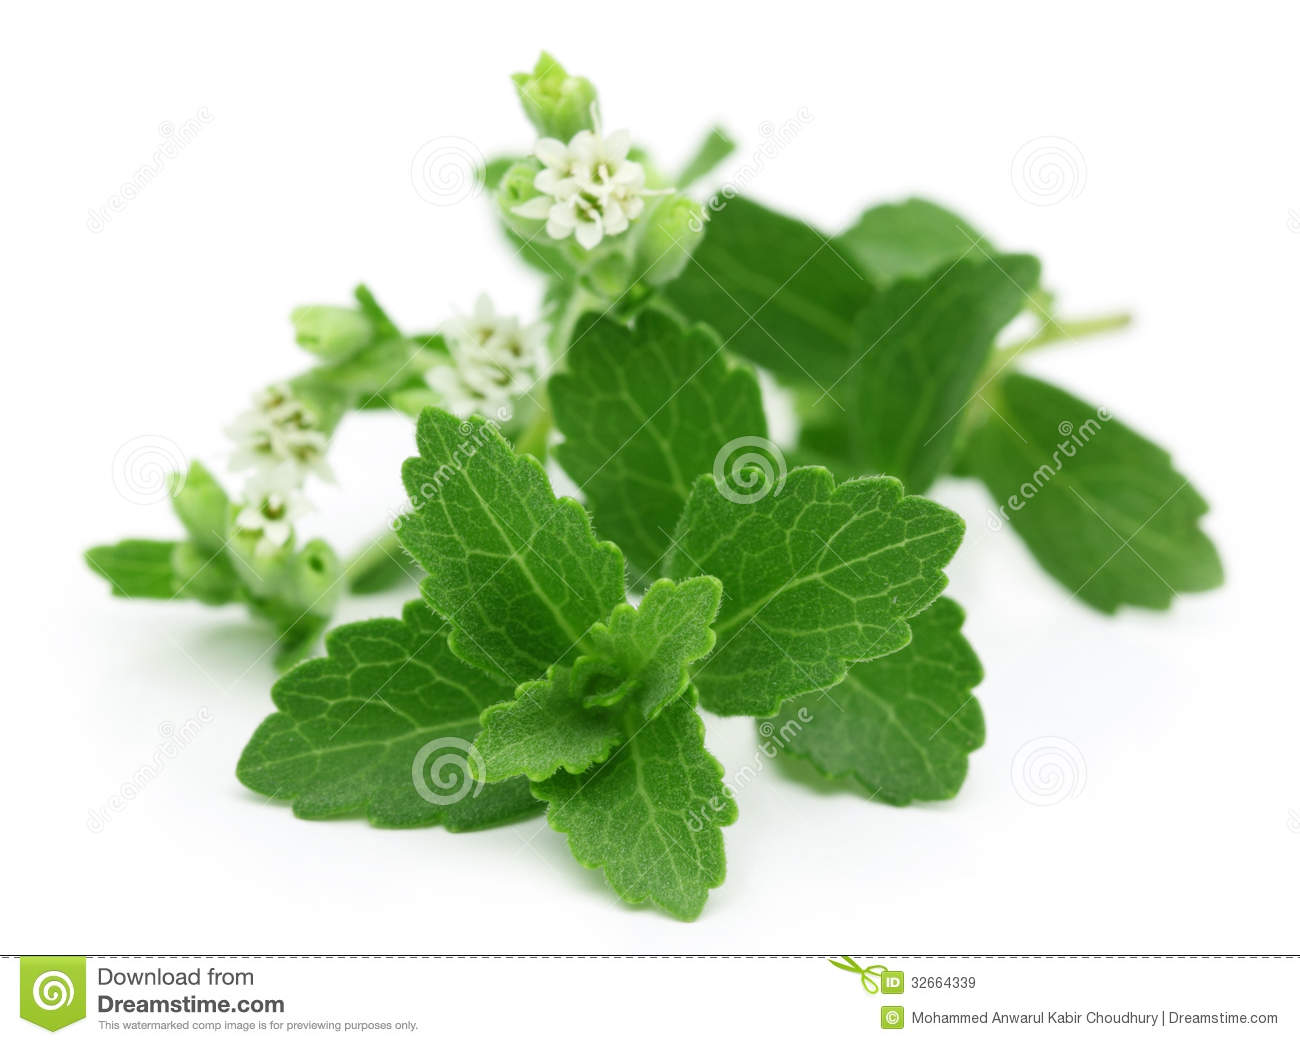 stevia alternate white sugar 15 alternatives to white sugar it has zero calories and isn't harmful to your teeth like sugar stevia by itself doesn't have a very long shelf life.